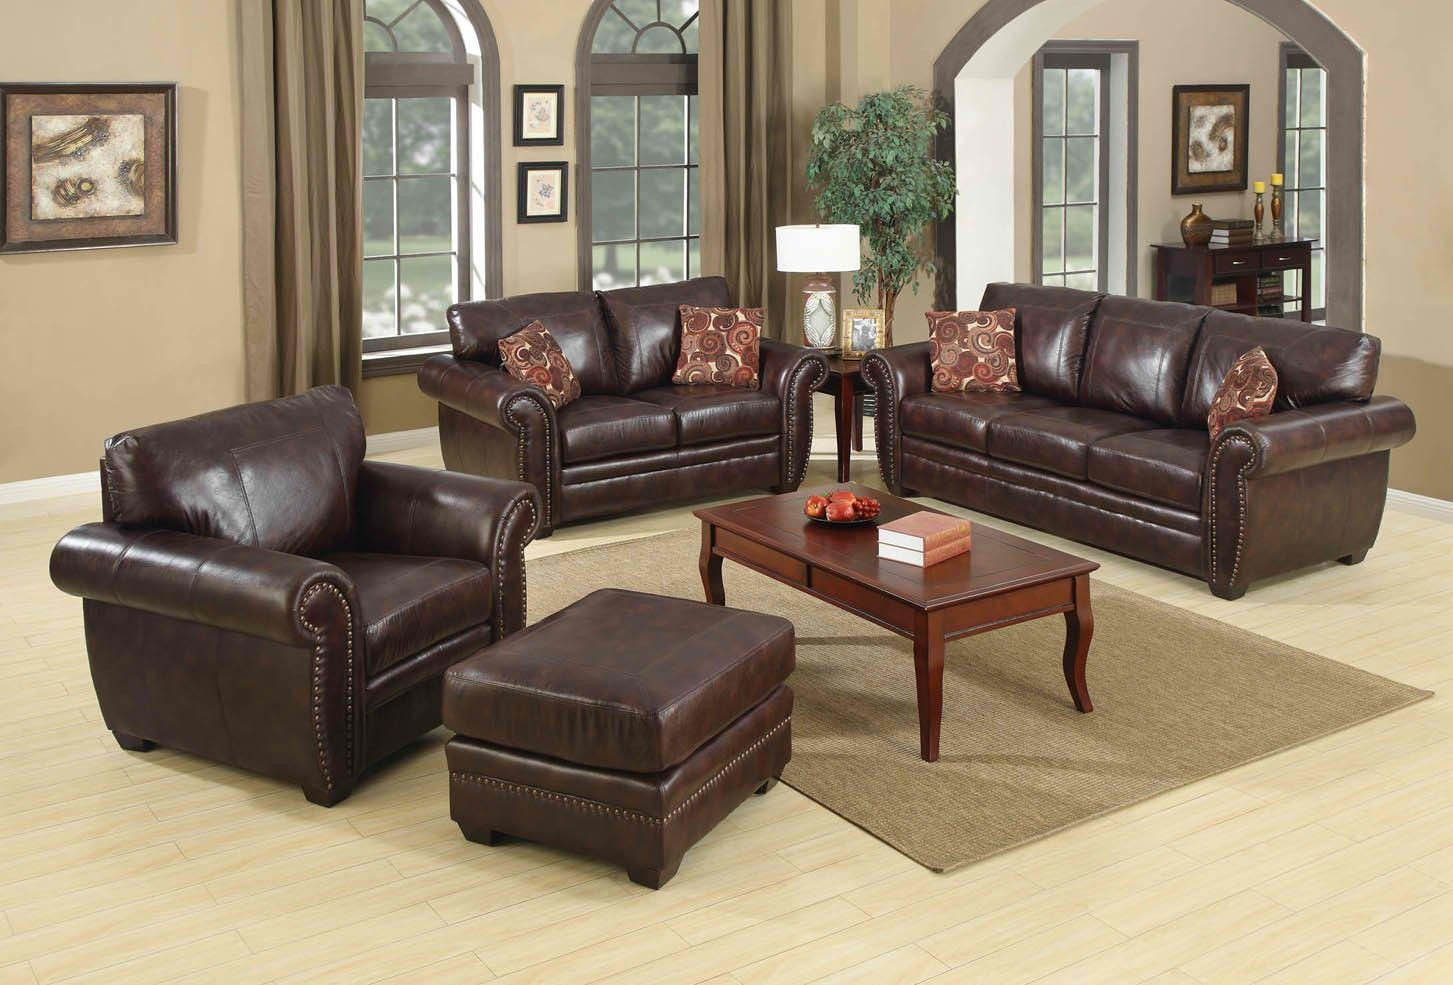 wall colors for brown furniture list 17 ideas in best on best color to paint living room walls id=83953